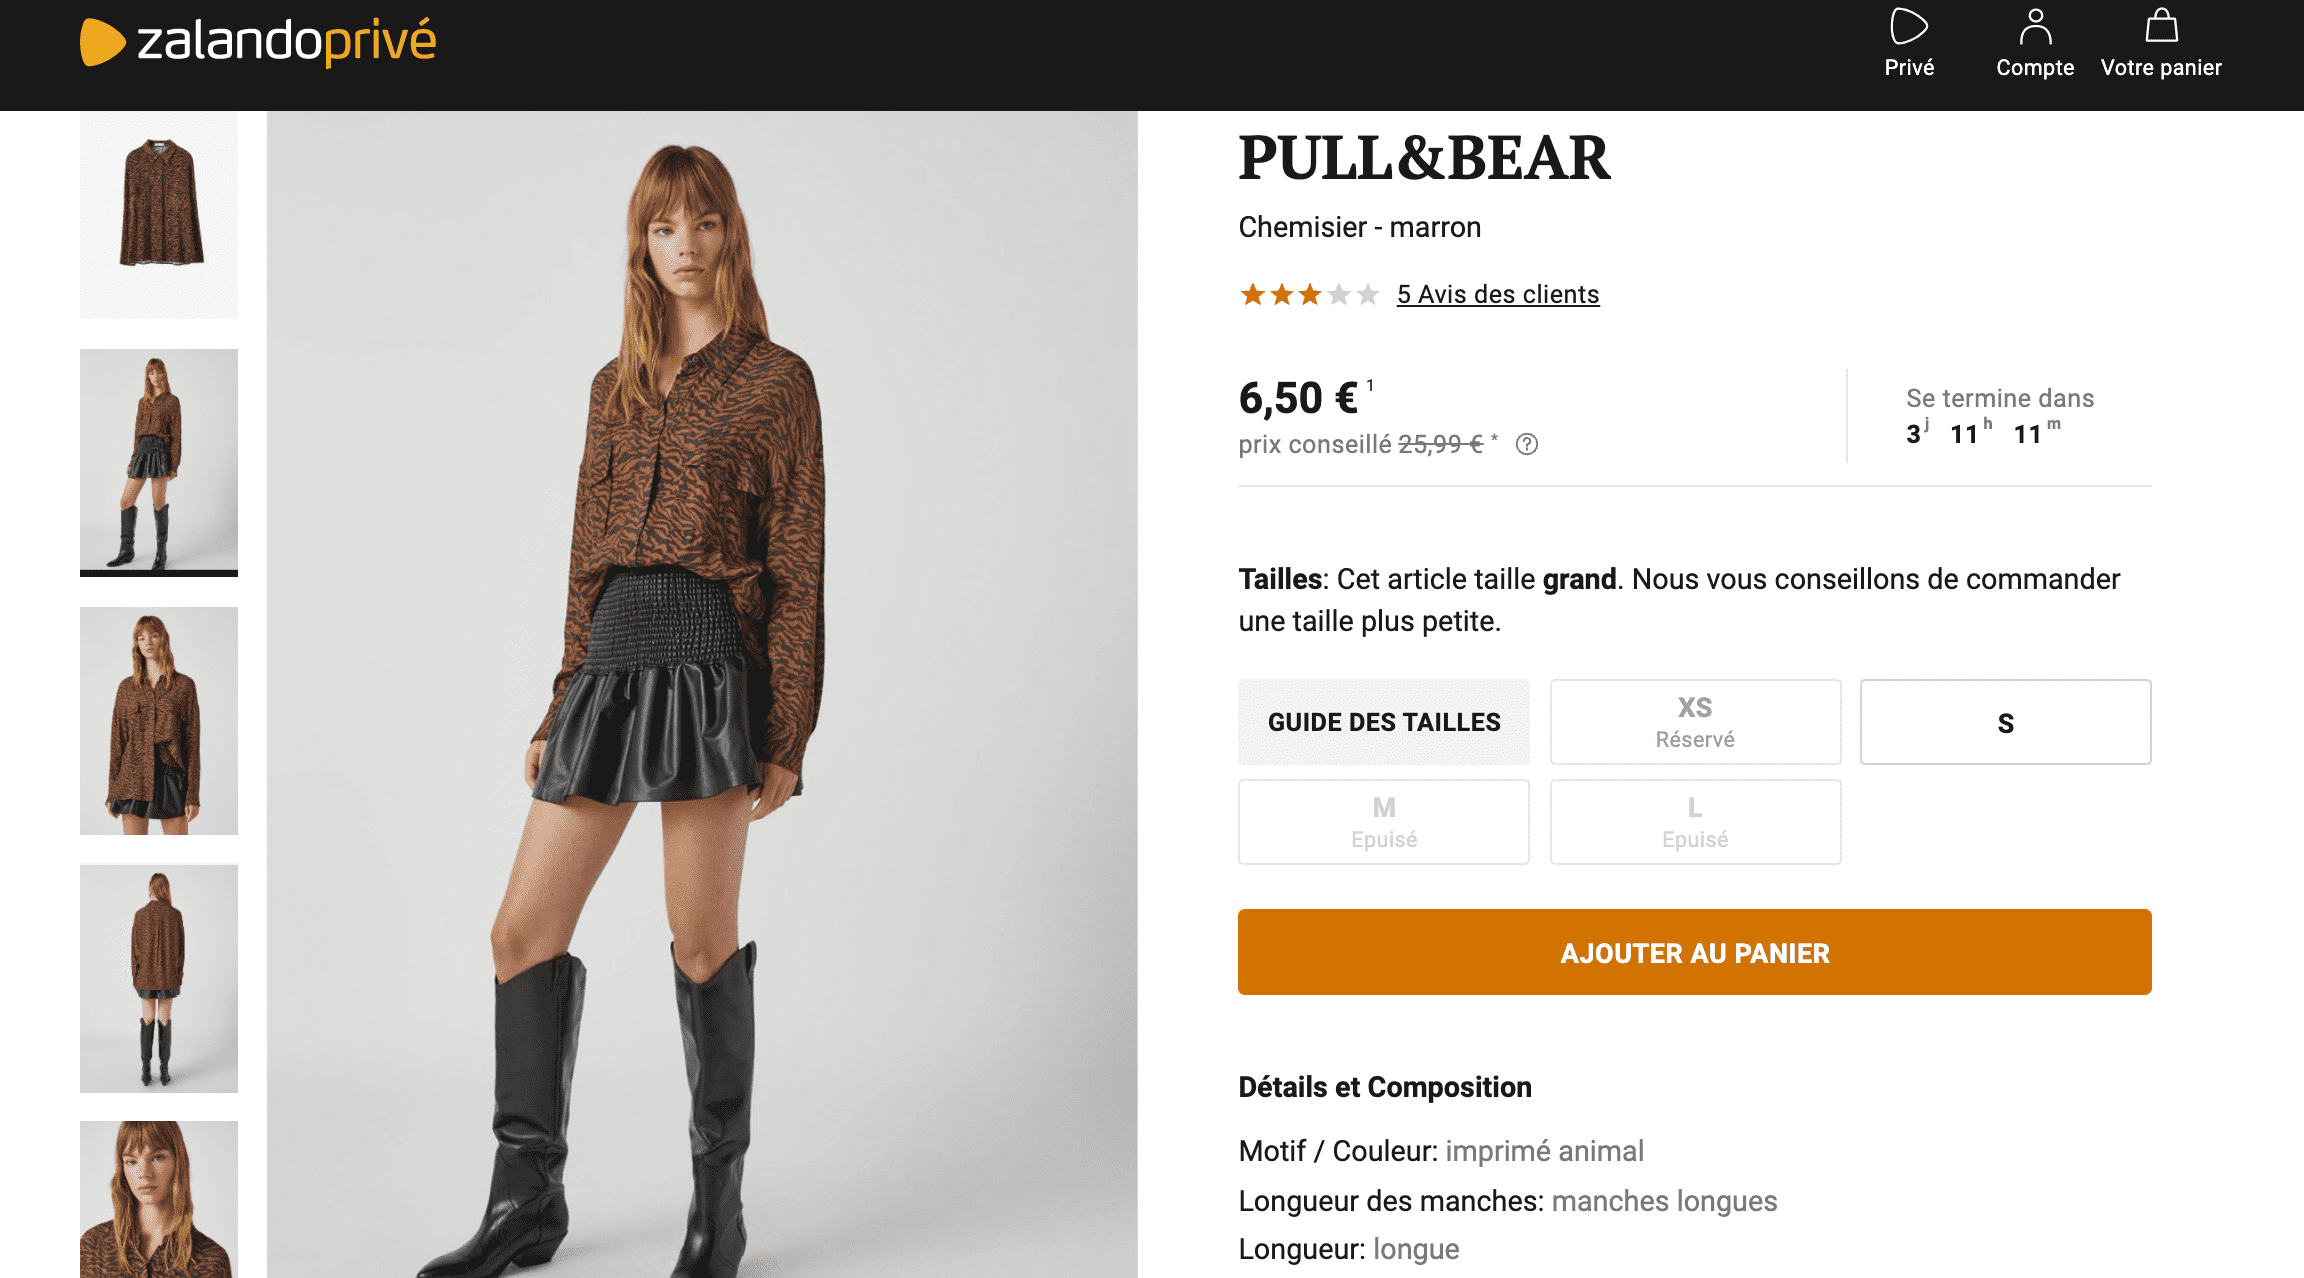 Promo pull and bear